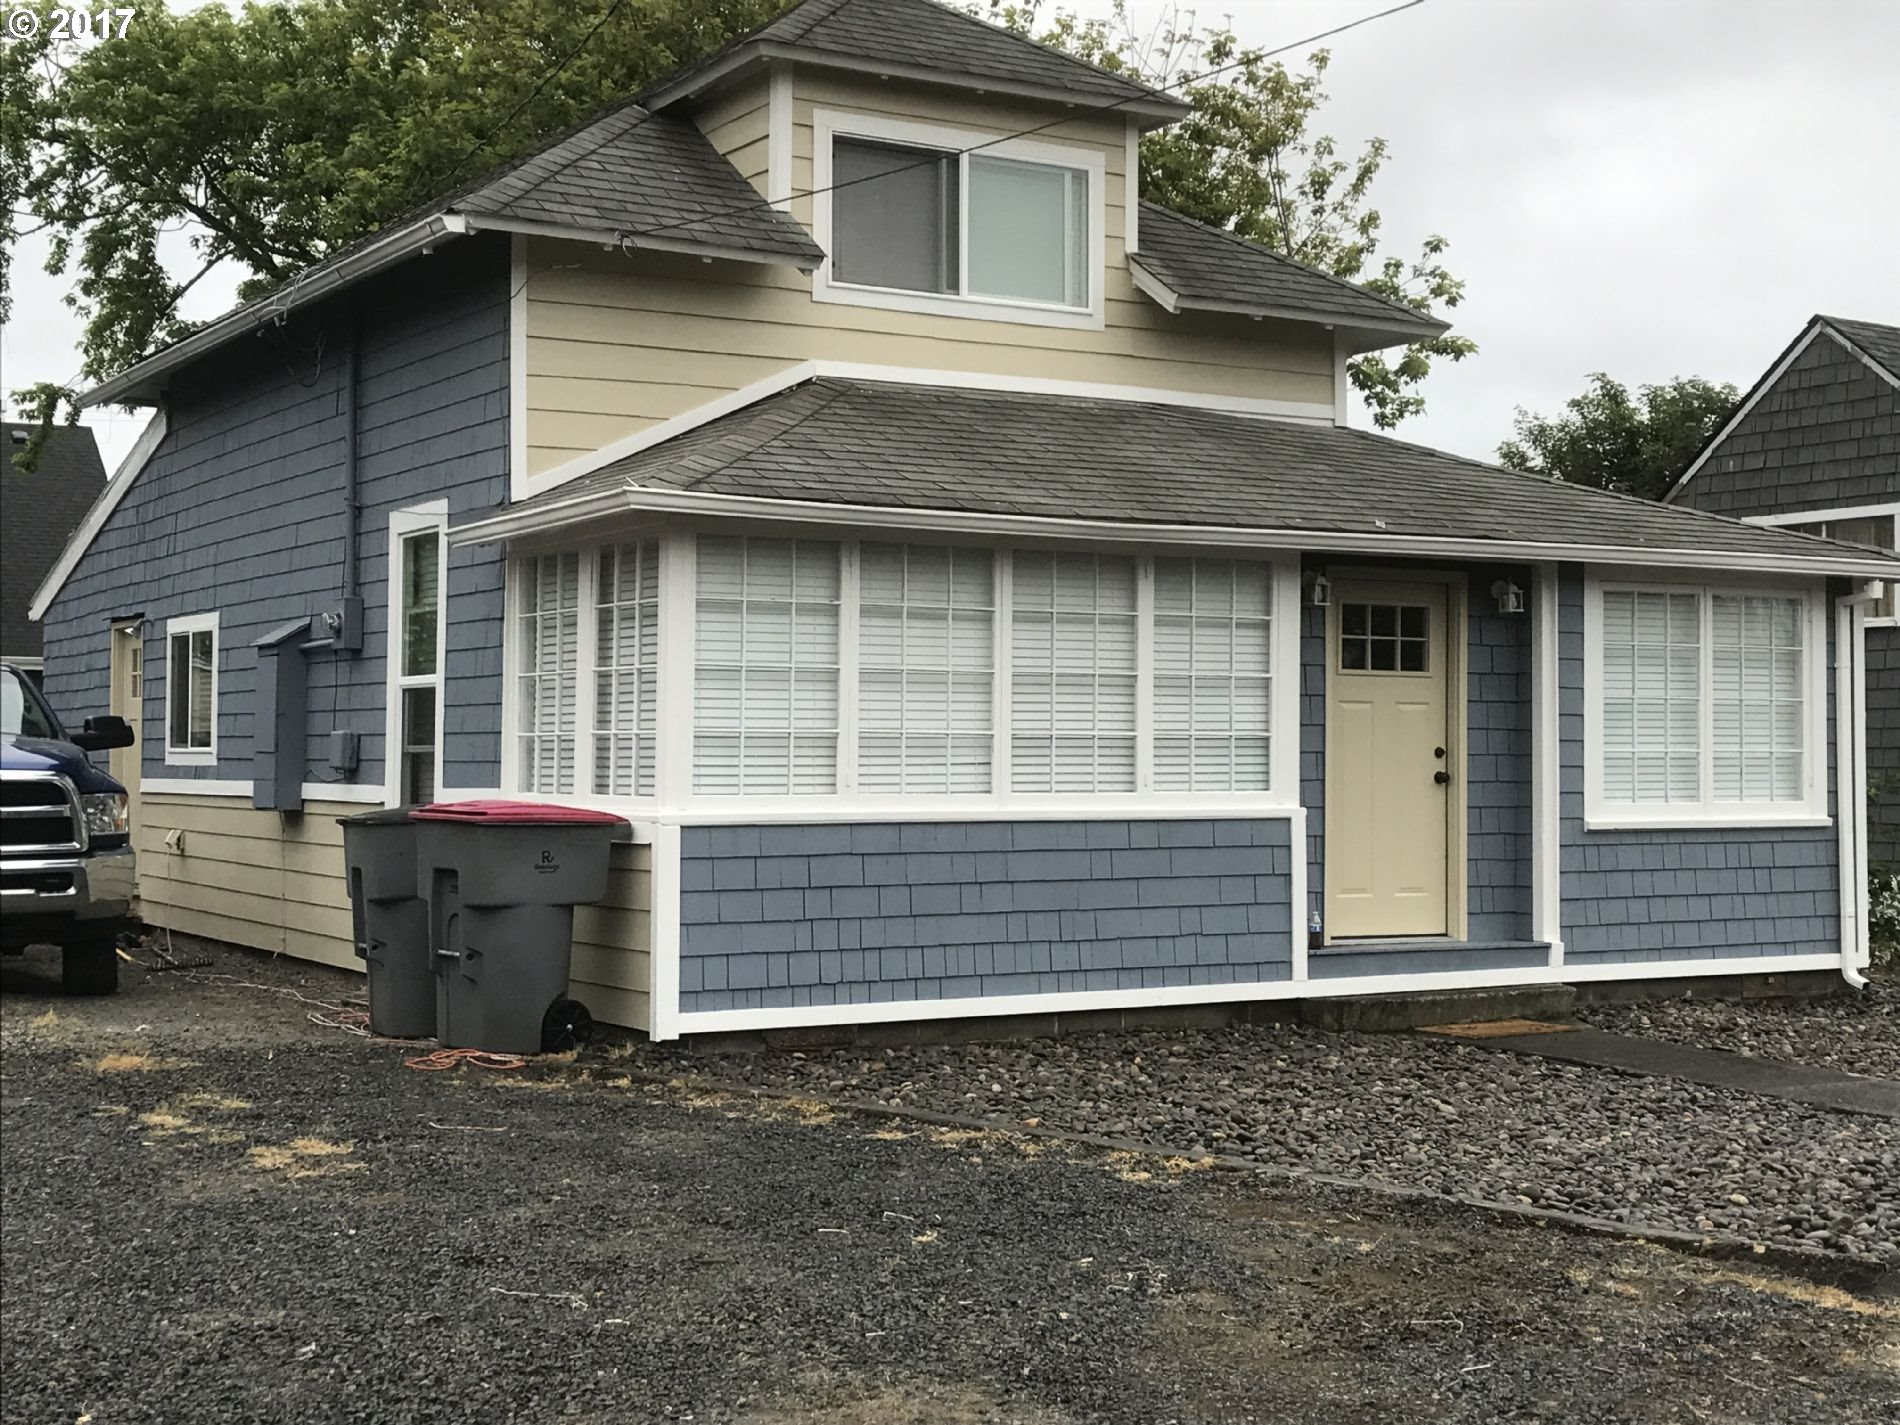 739 11th AVE Seaside, OR 97138 - MLS #: 17461433